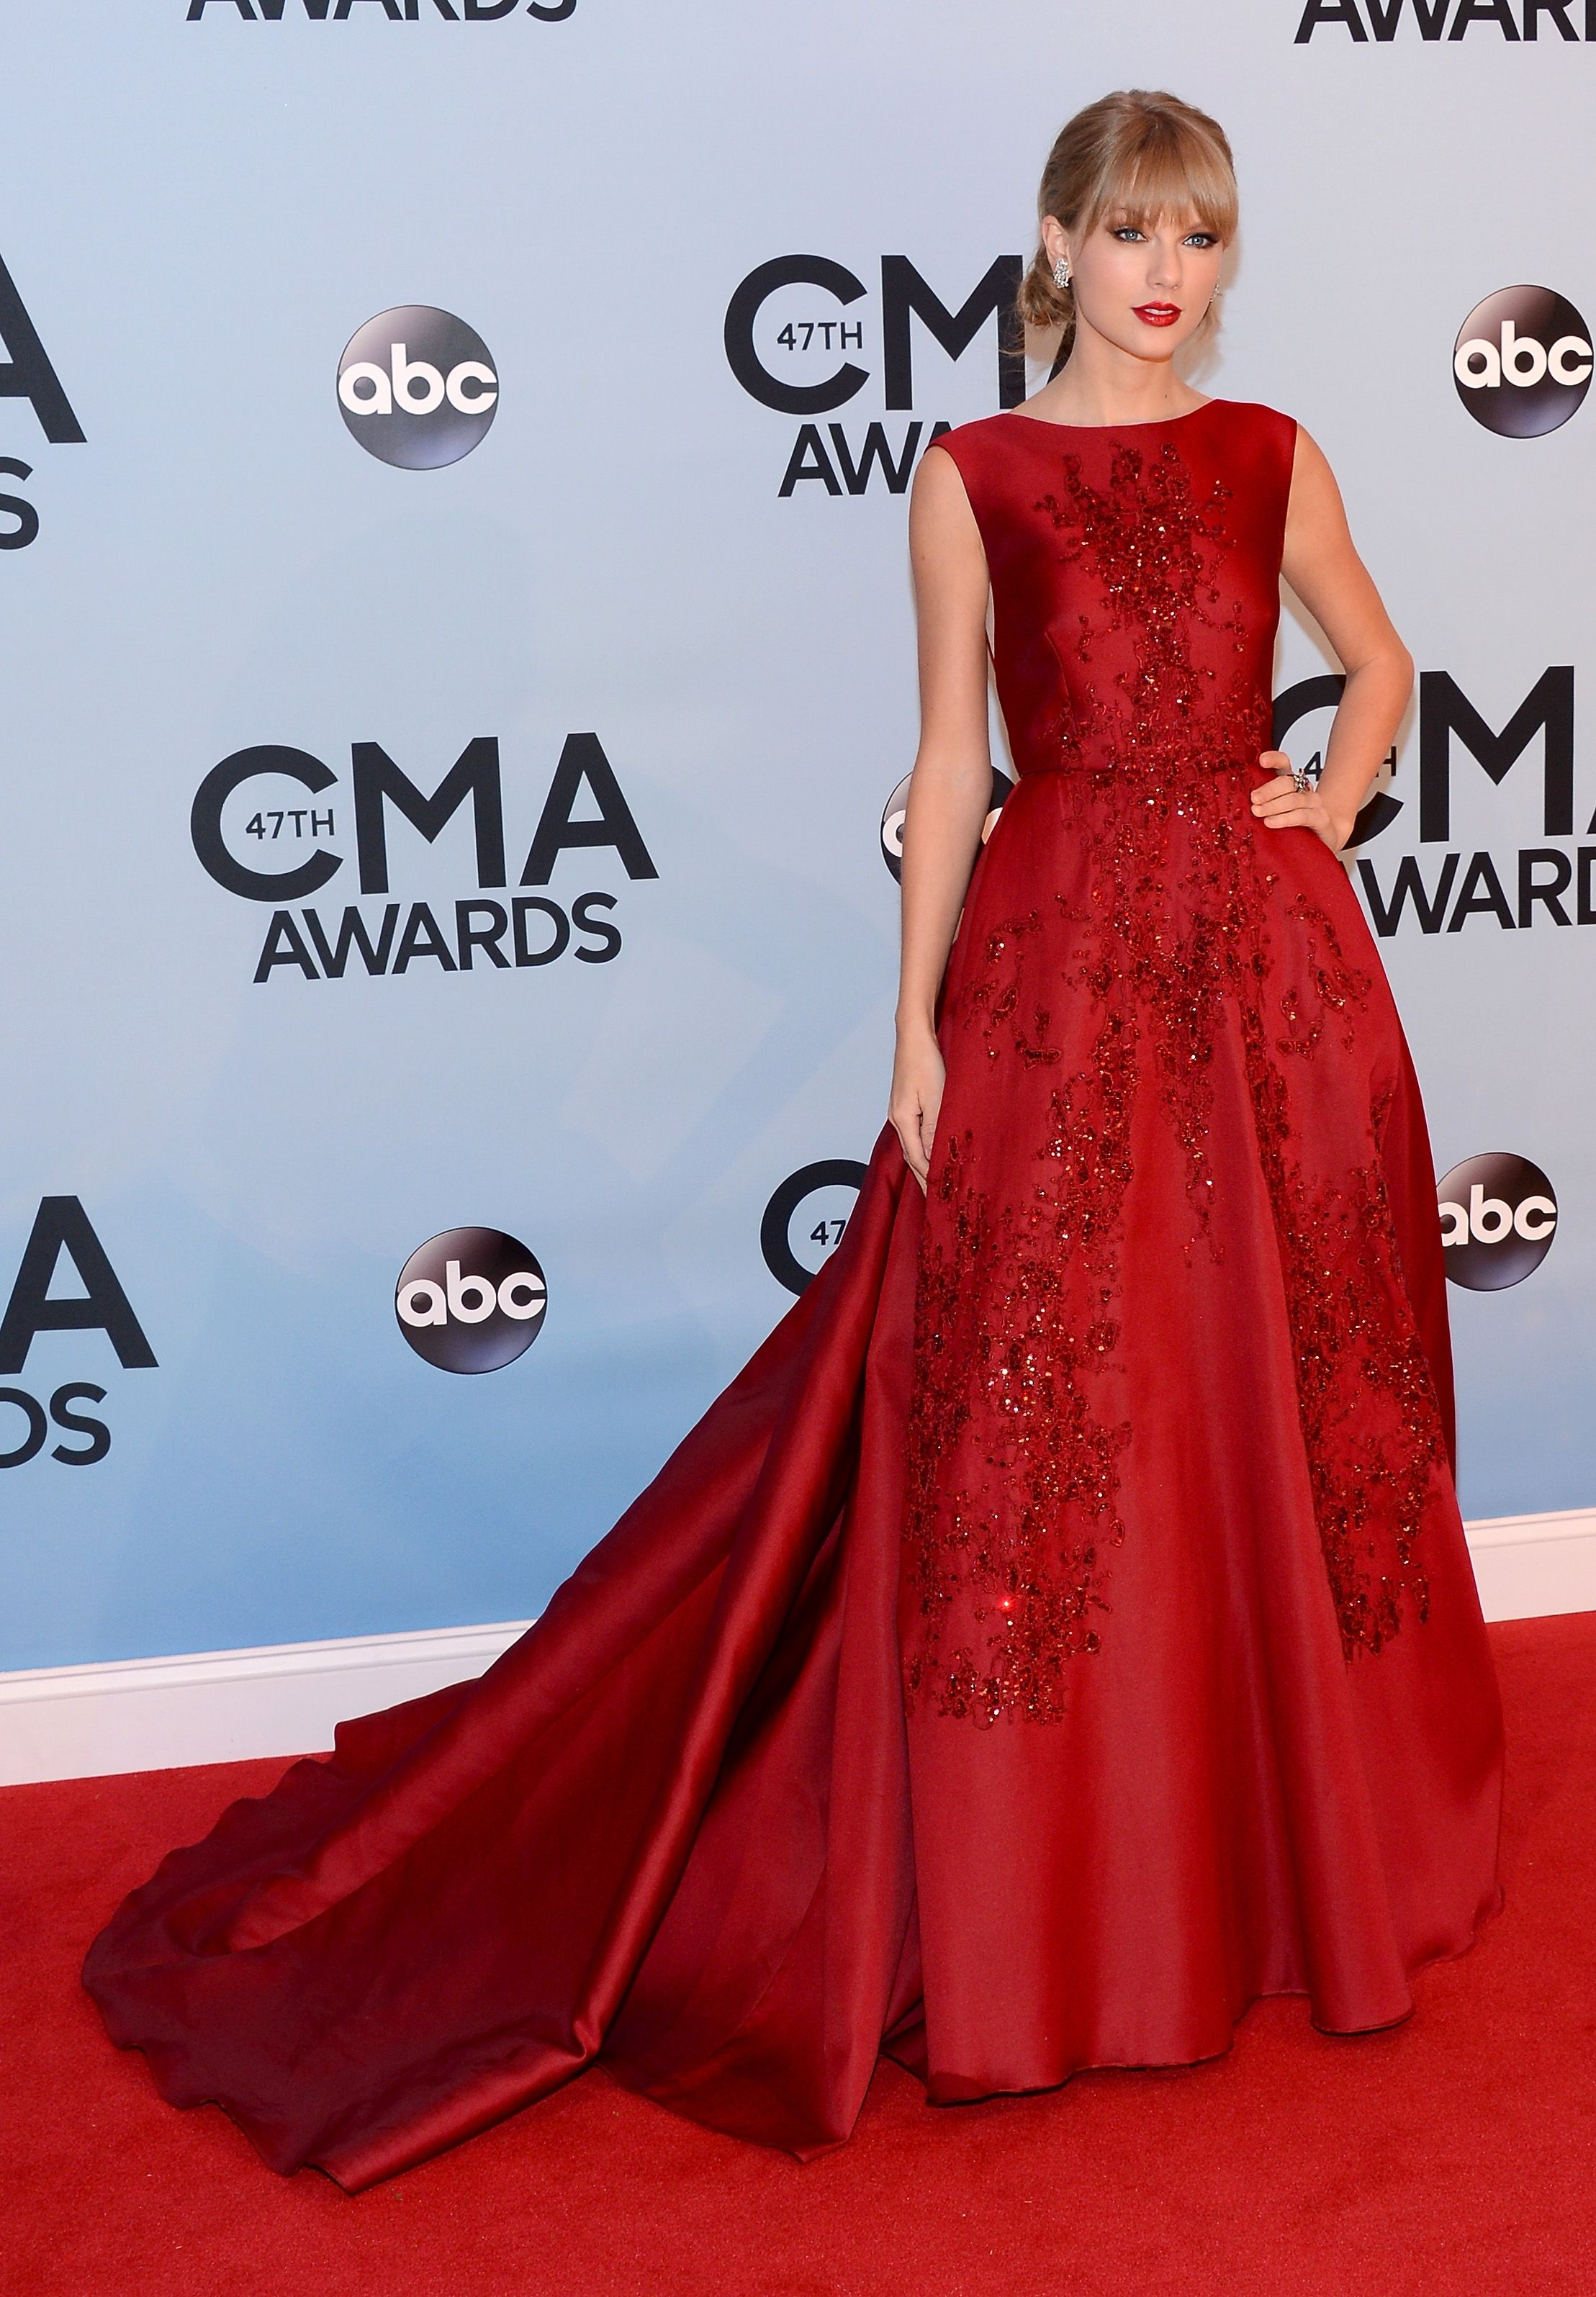 Taylor Swift Roter Teppich Taylor Swift Red Carpet Dresses Blue Great Ideas For